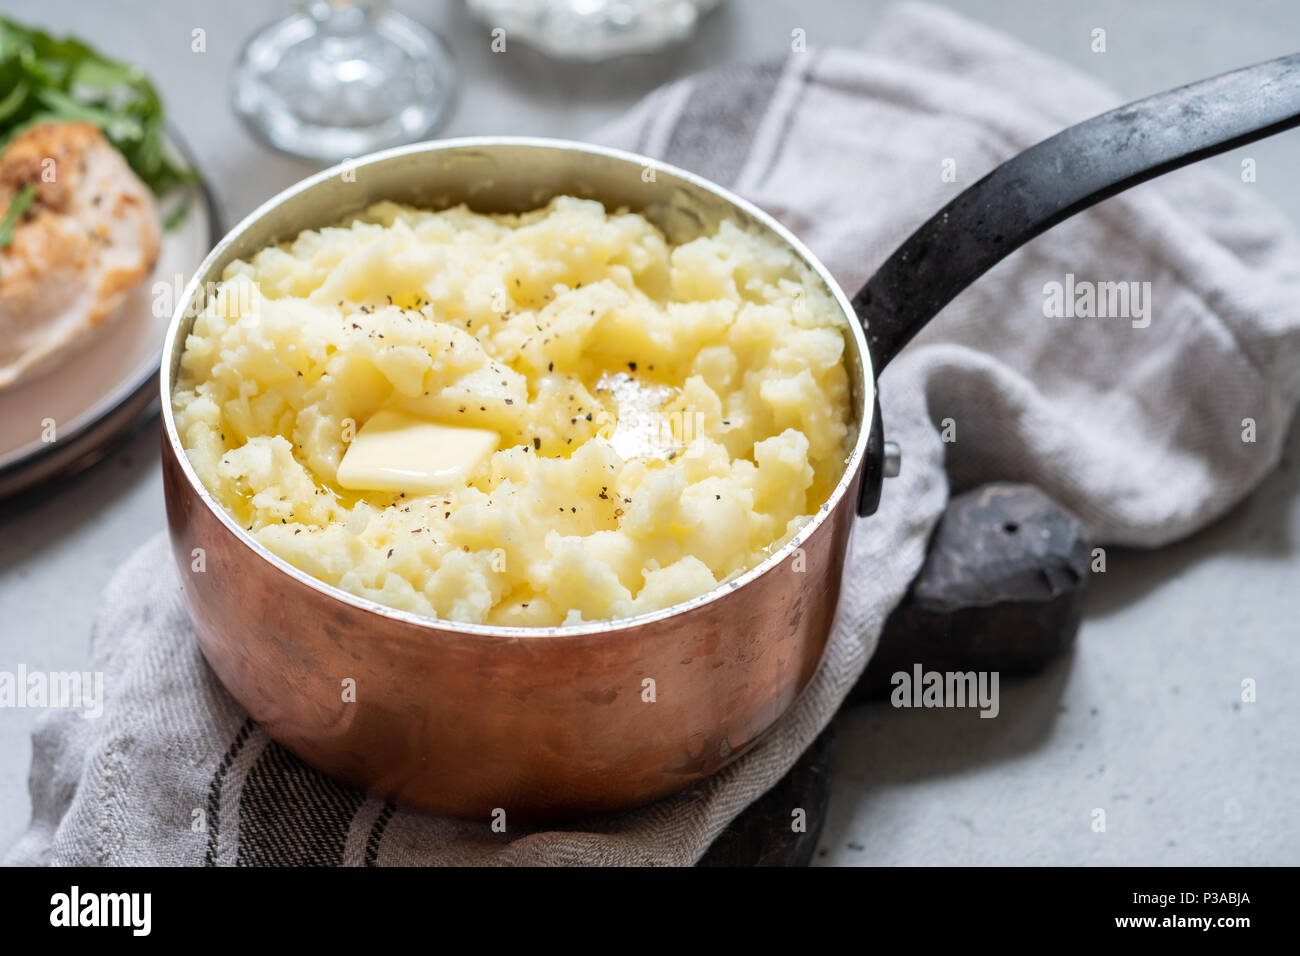 Mashed potato with a butter - Stock Image